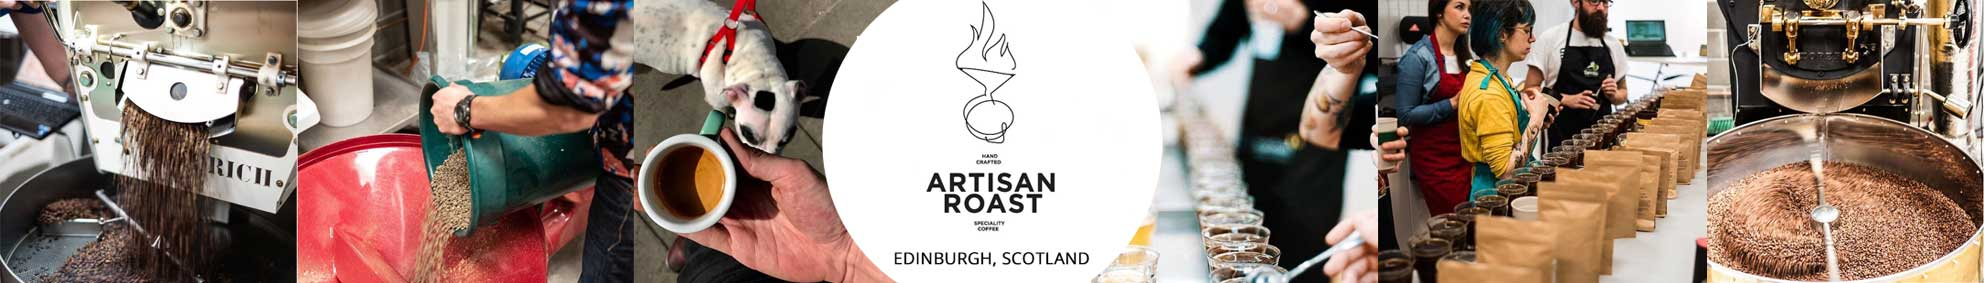 Artisan Roast Speciality Coffee Roasters